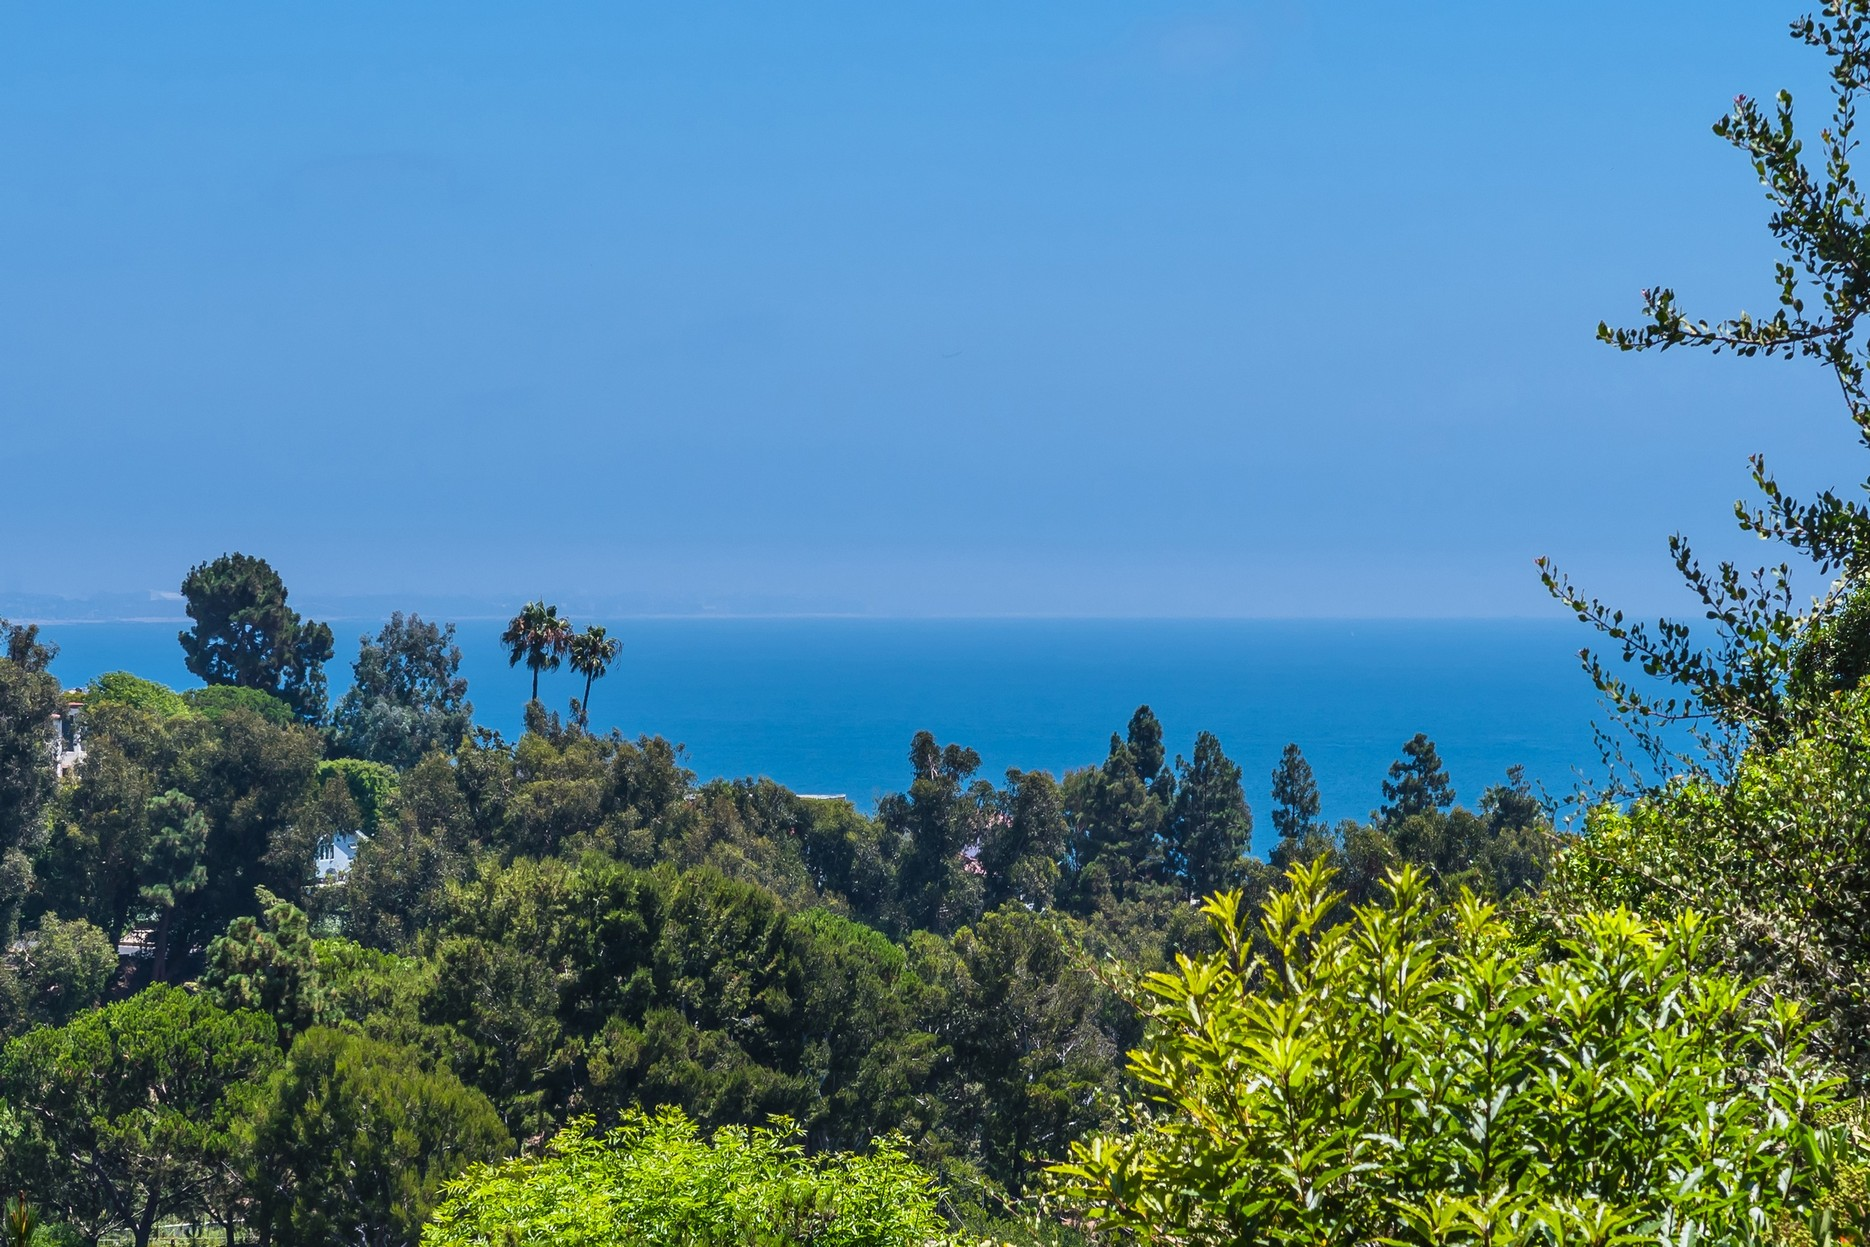 18008 Sea Reef,Pacific Palisades,California 90272,5 Bedrooms Bedrooms,3 BathroomsBathrooms,Home,Sea Reef,1090